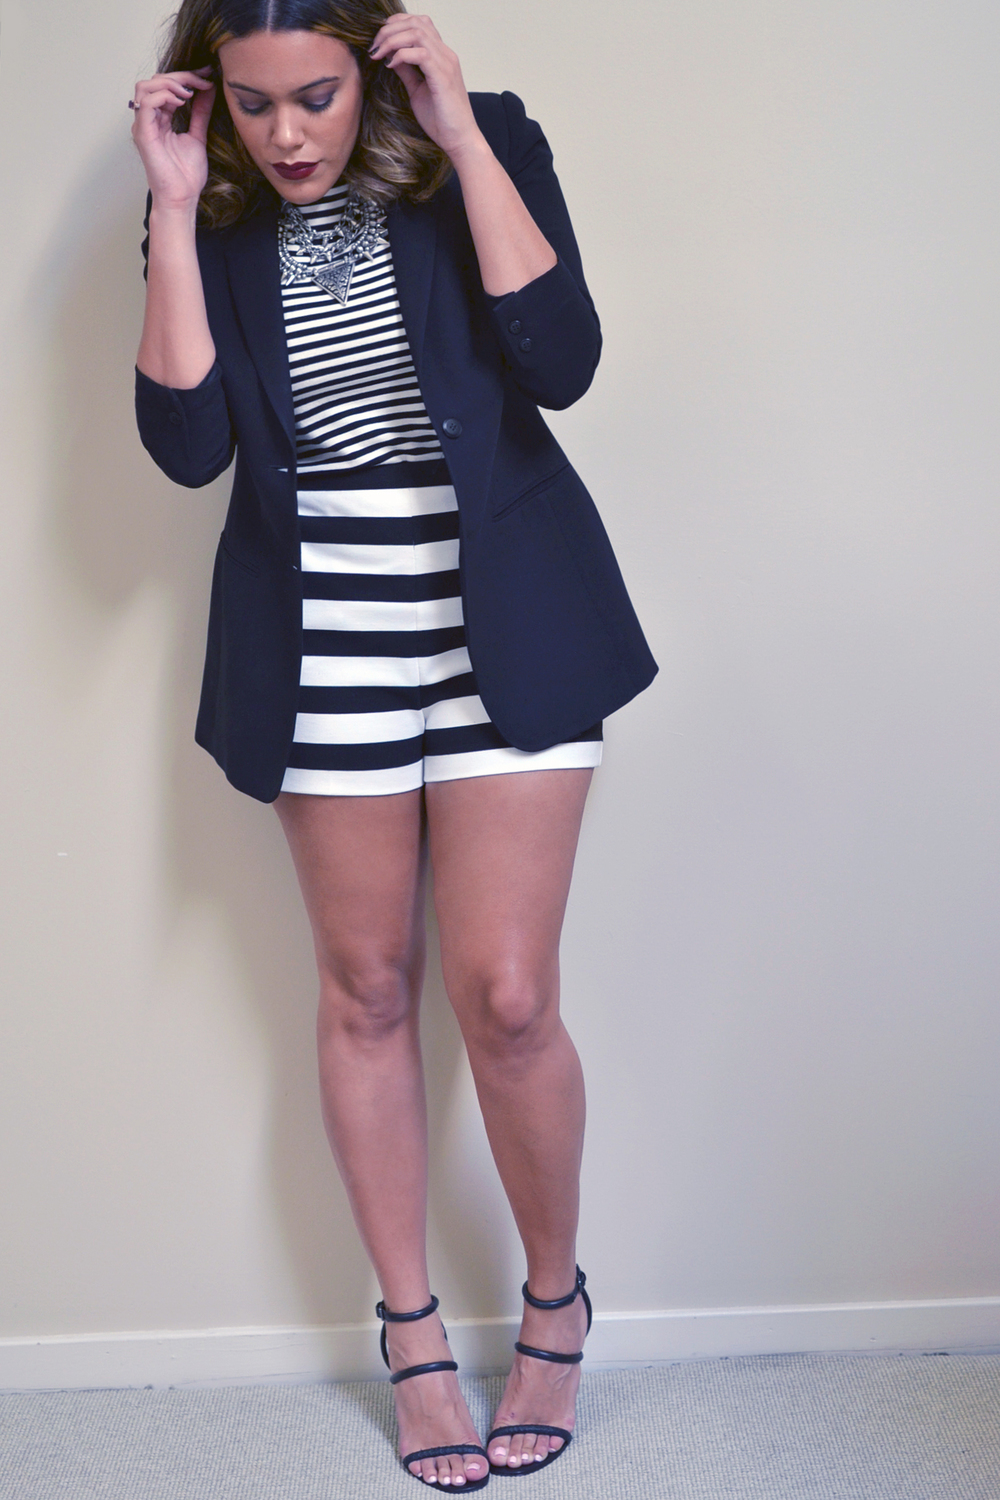 how-to-wear-stripes-on-stripes-print-mixing-black-and-white-zara-dress-express-shorts.jpg